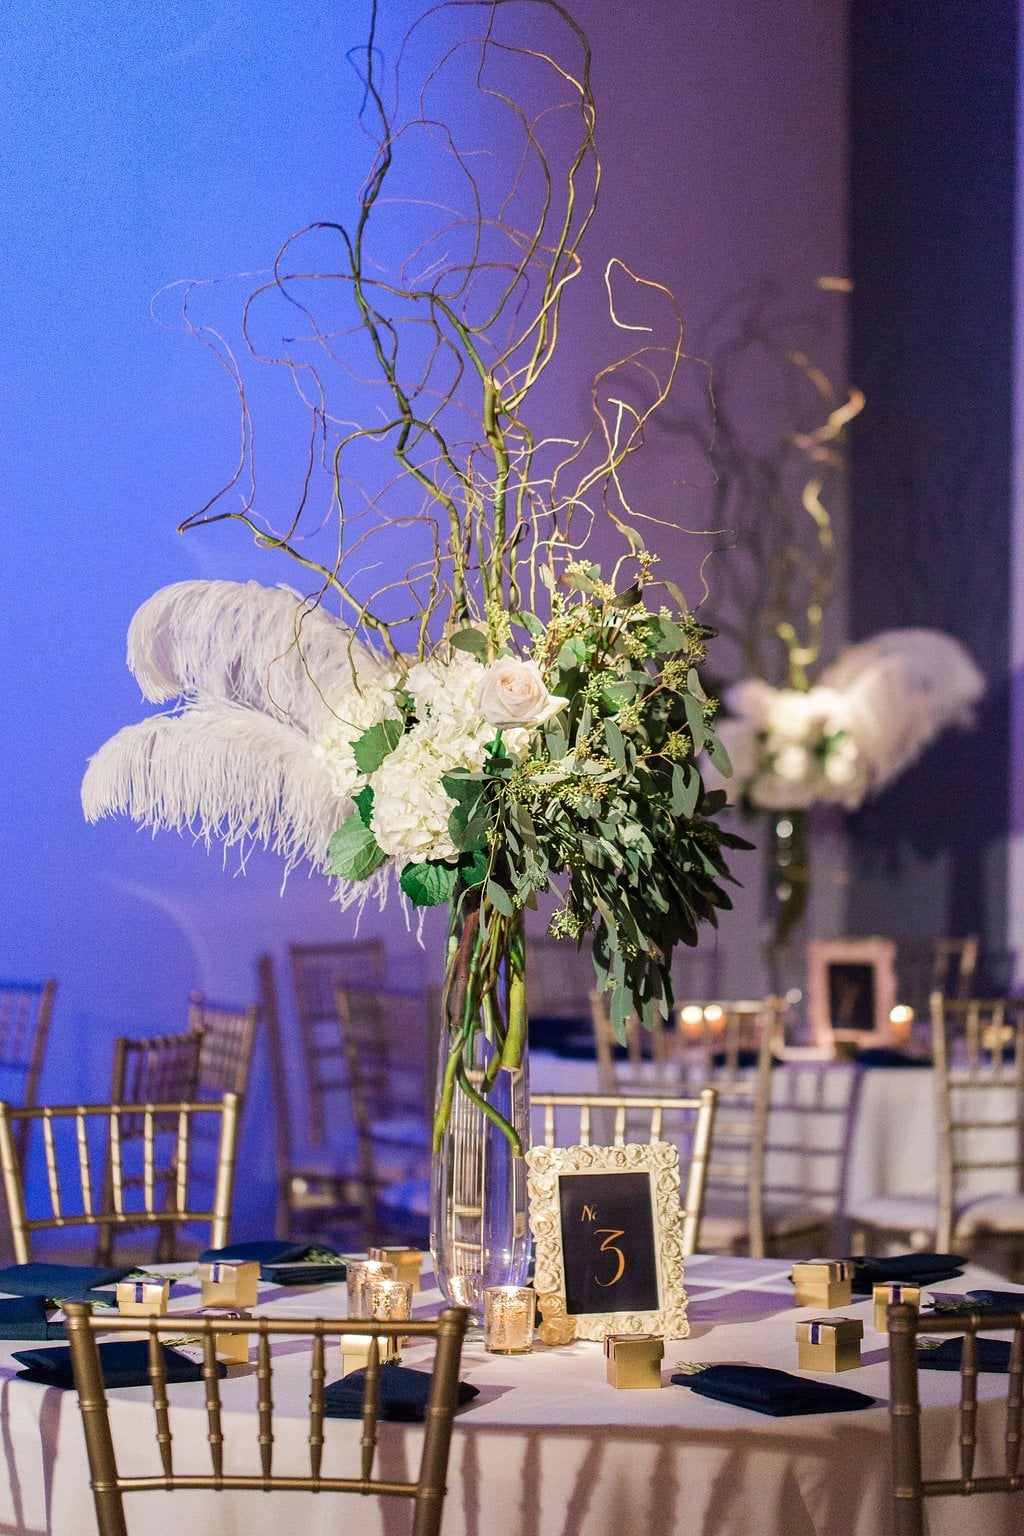 Tall floral centerpieces with white feathers and flowers at winter wedding reception - J Verno Studios Winter Wedding